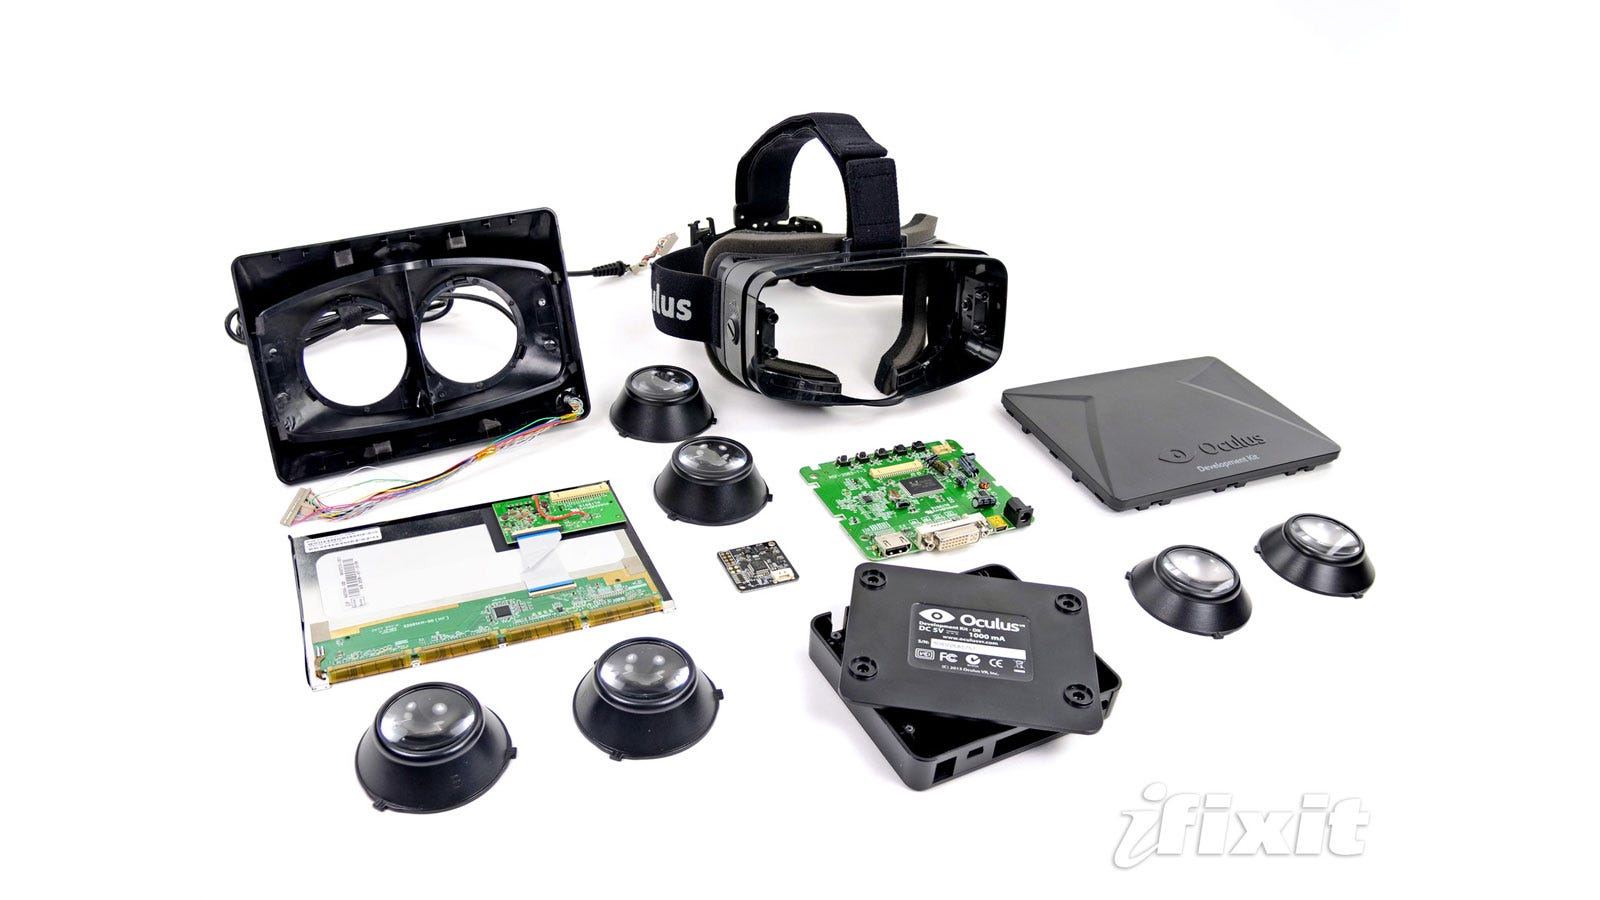 What S Inside The Oculus Rift Virtual Reality Headset